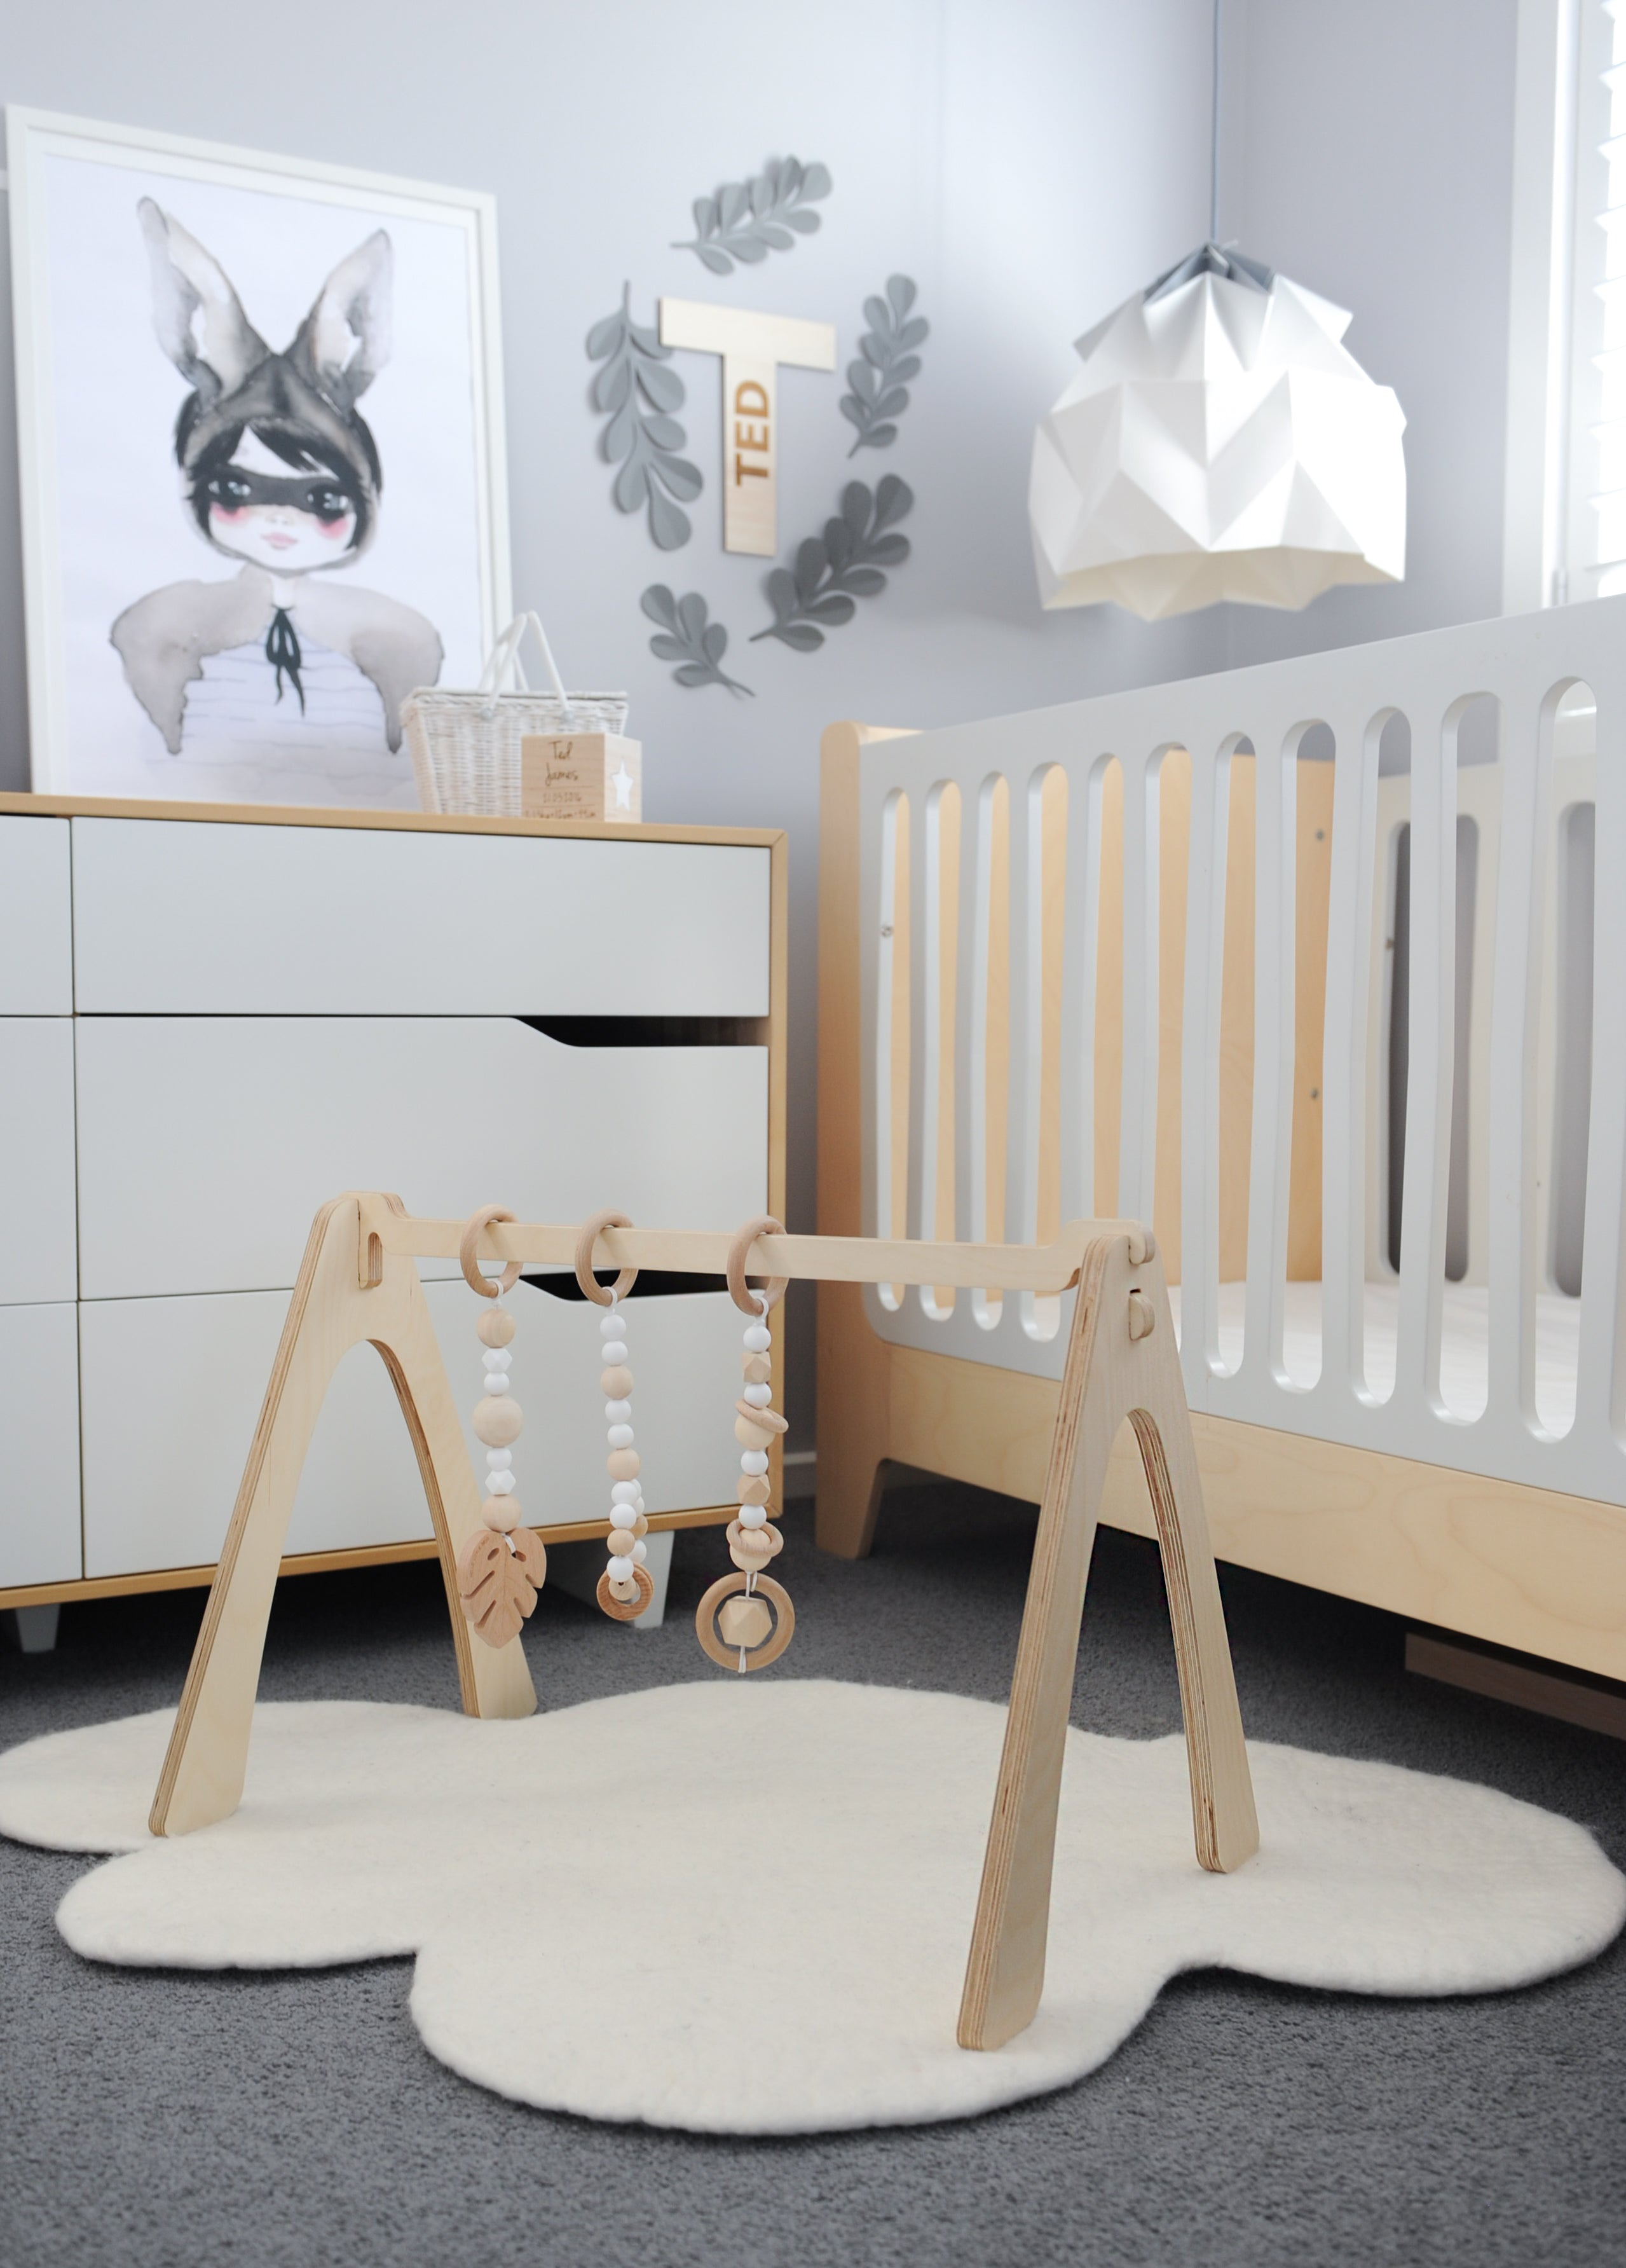 Baby Play Gym - Hand Crafted